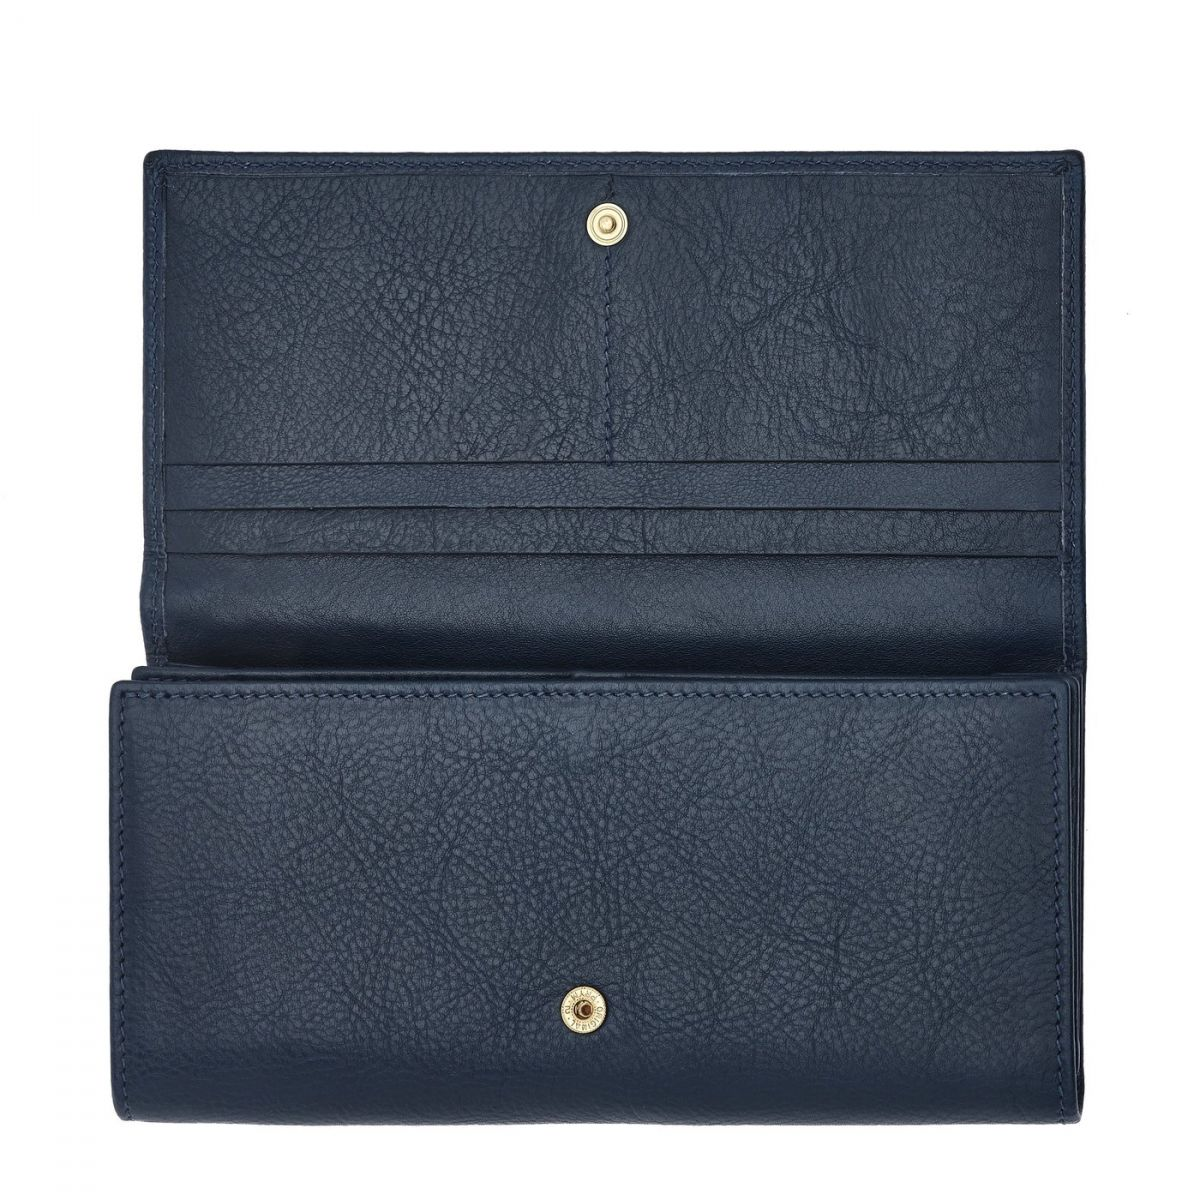 Women's Continental Wallet  in Cowhide Double Leather SCW005 color Blue | Details